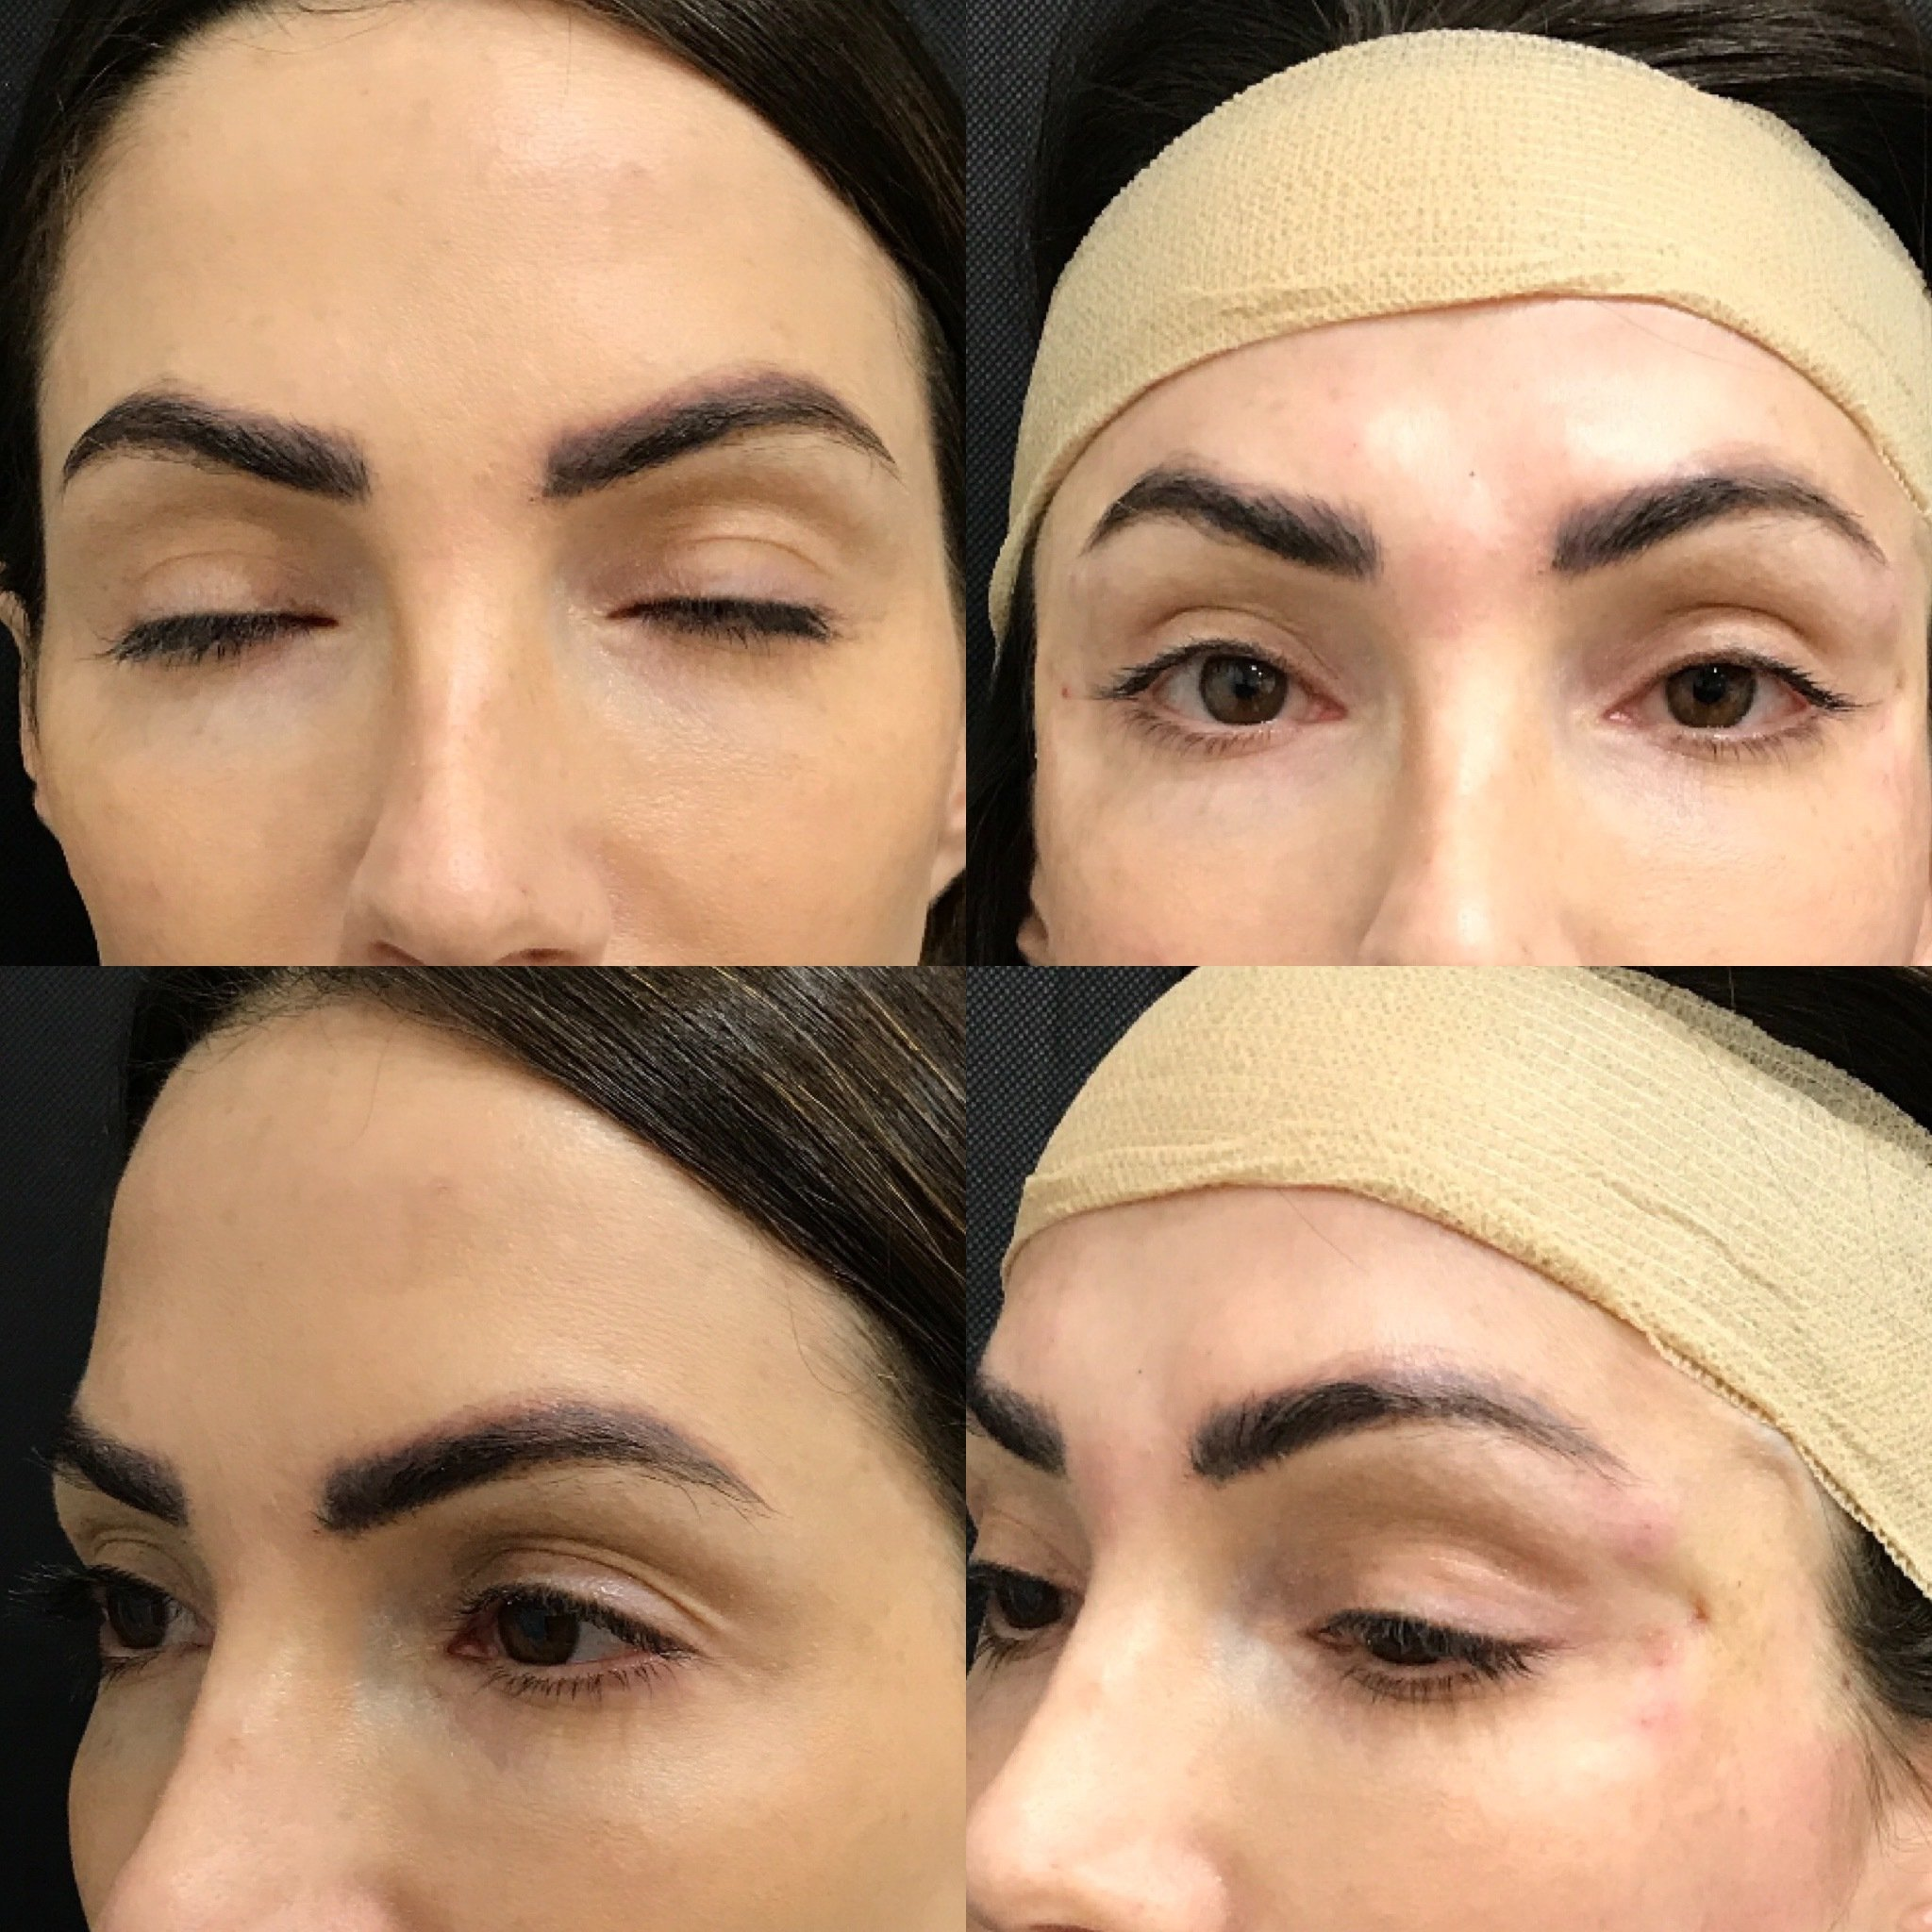 Foxy Eyes Before and After Multiple Angles